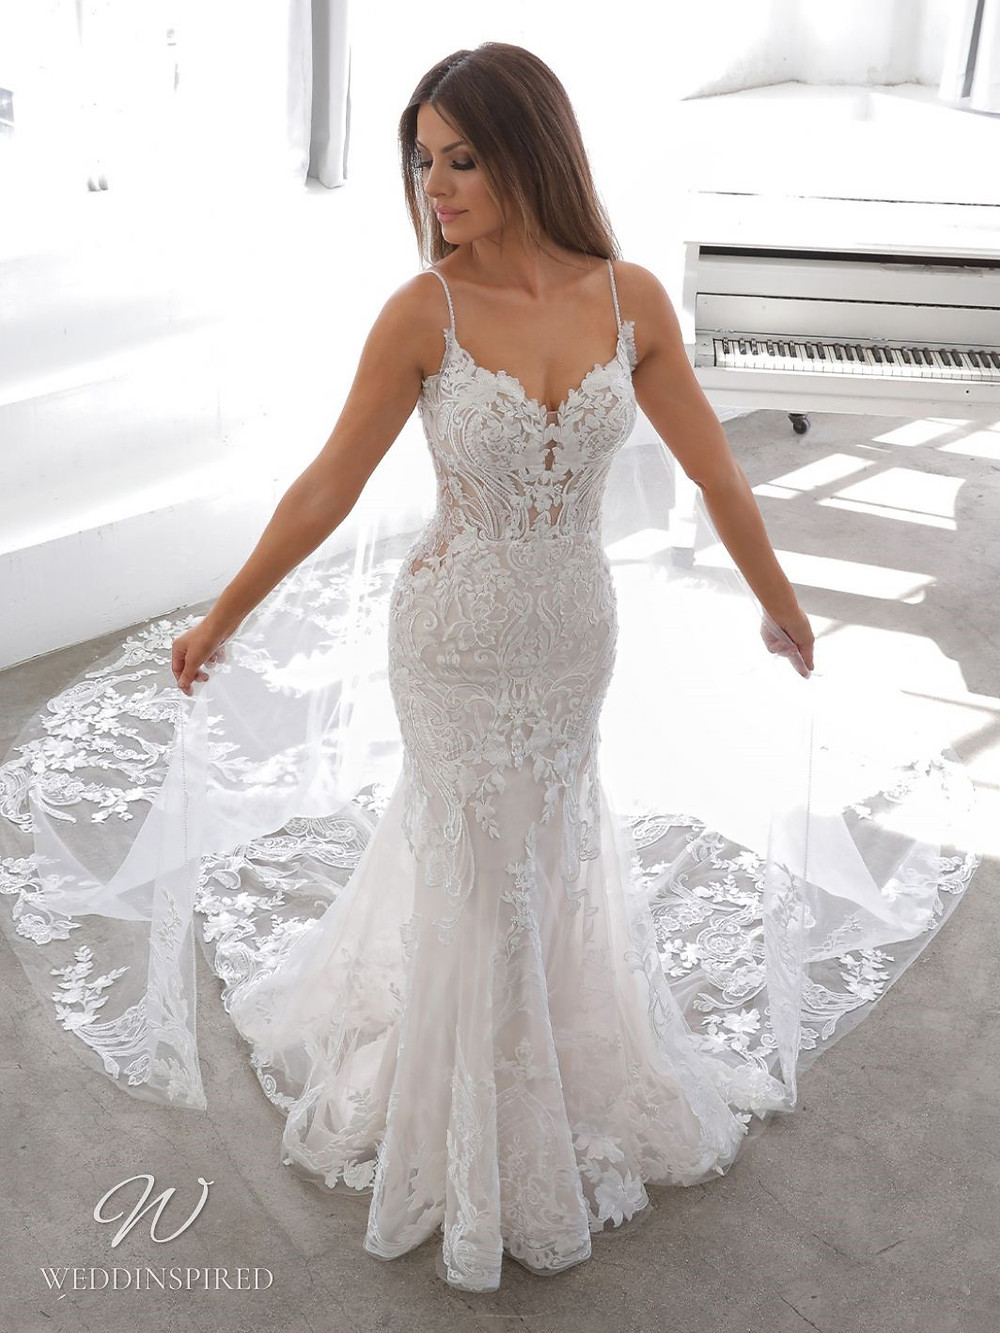 A Blue by Enzoani 2021 lace mermaid wedding dress with straps and v neck